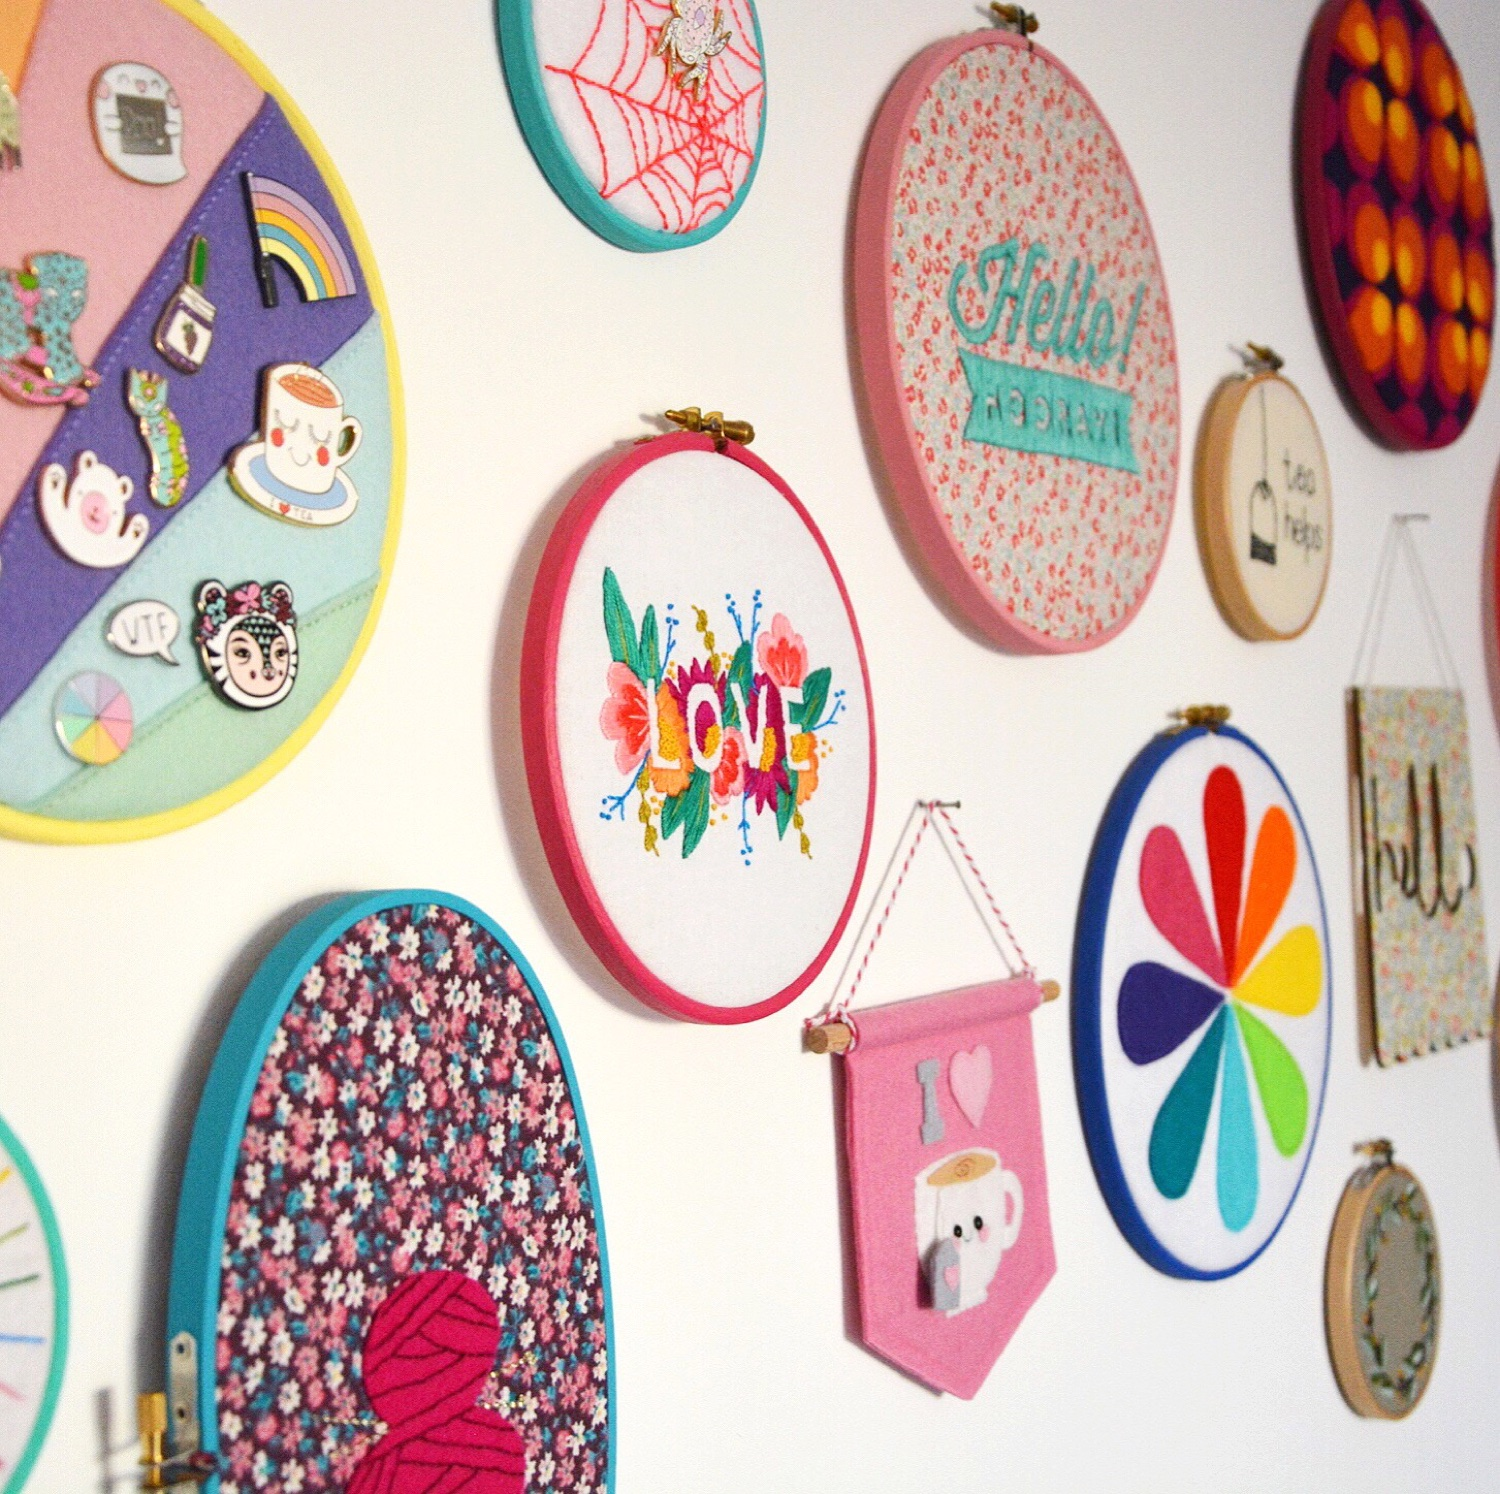 Hoop wall | Hello! Hooray!